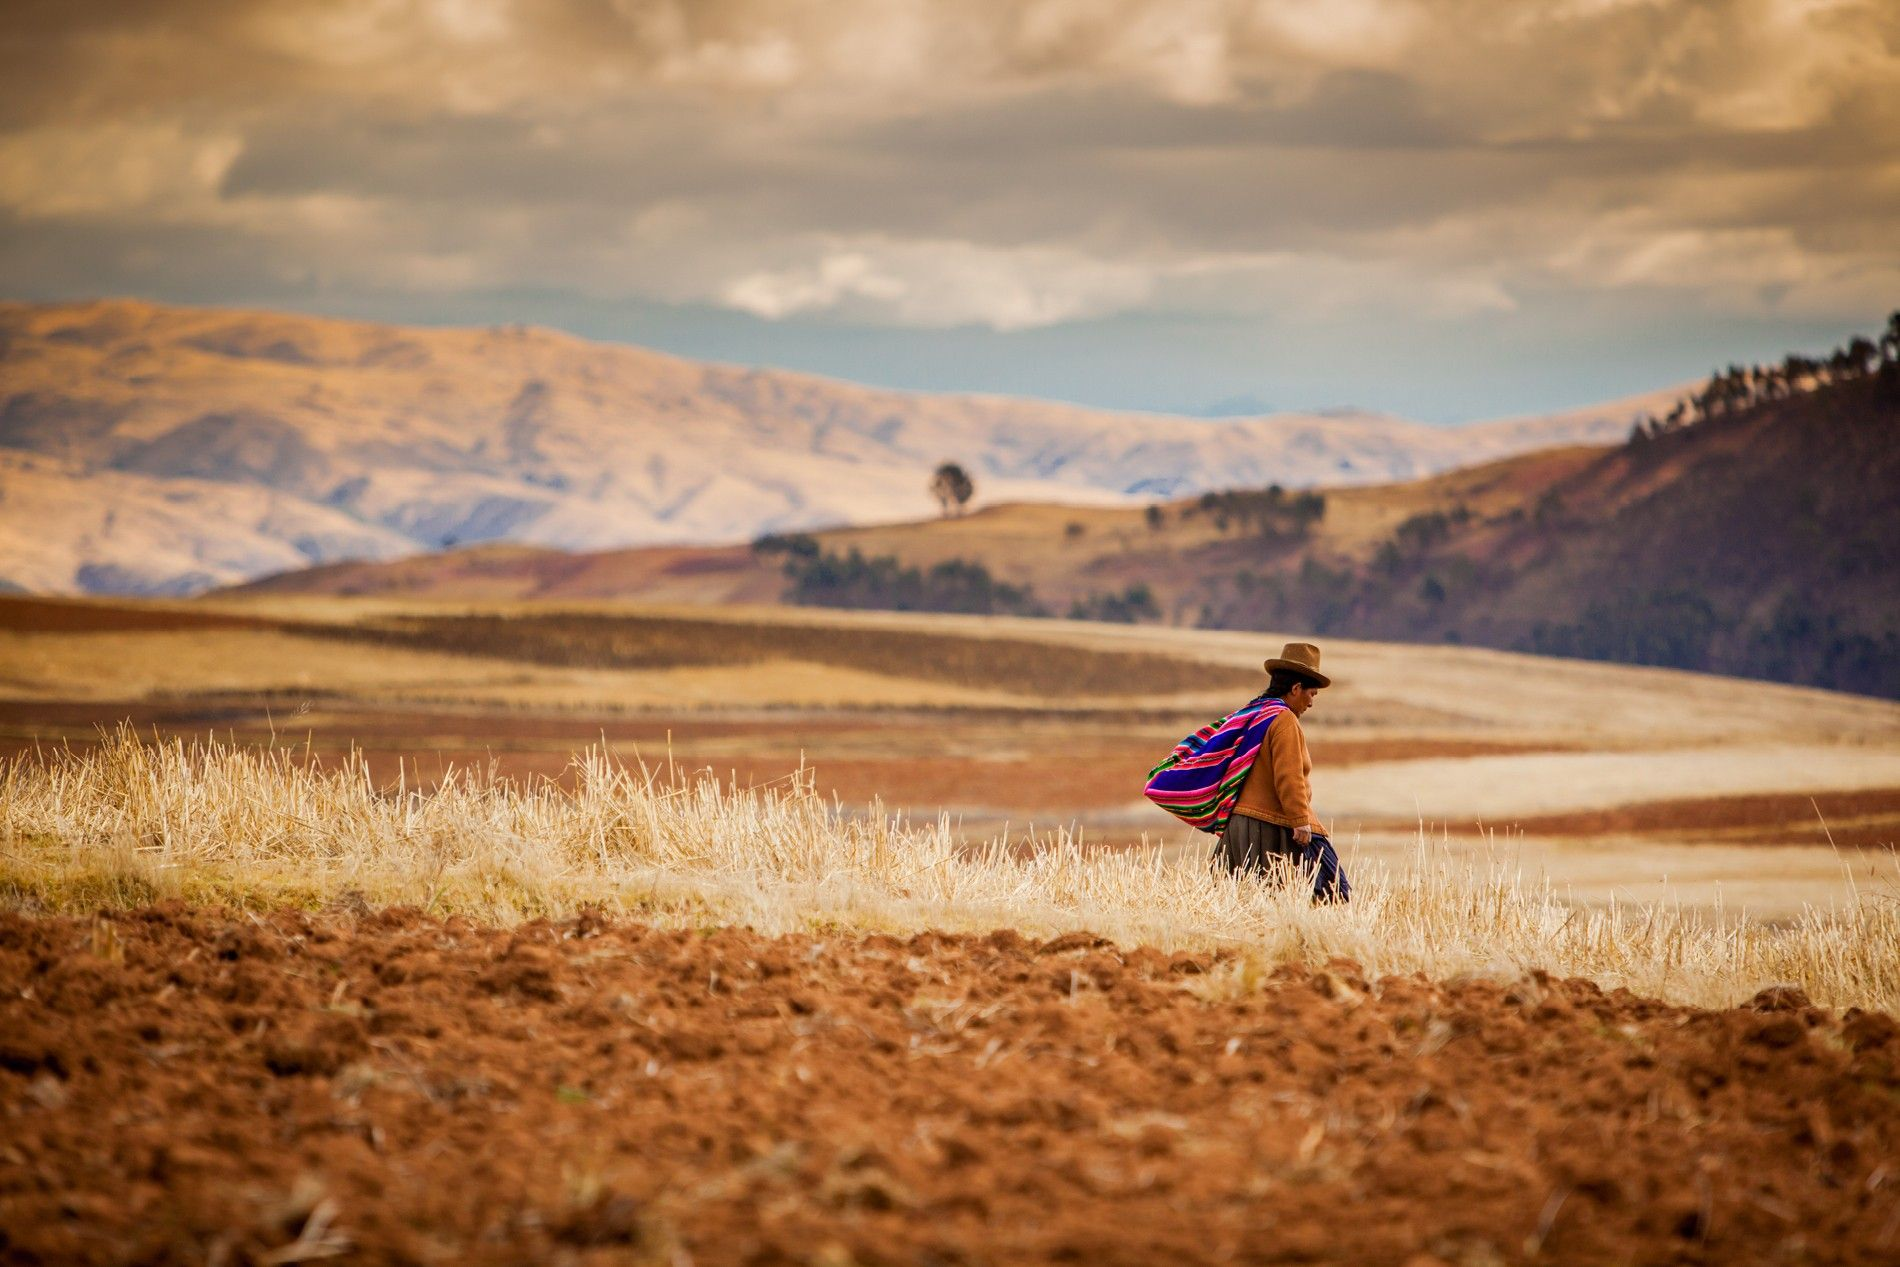 Farming in the Andes near Urubamba